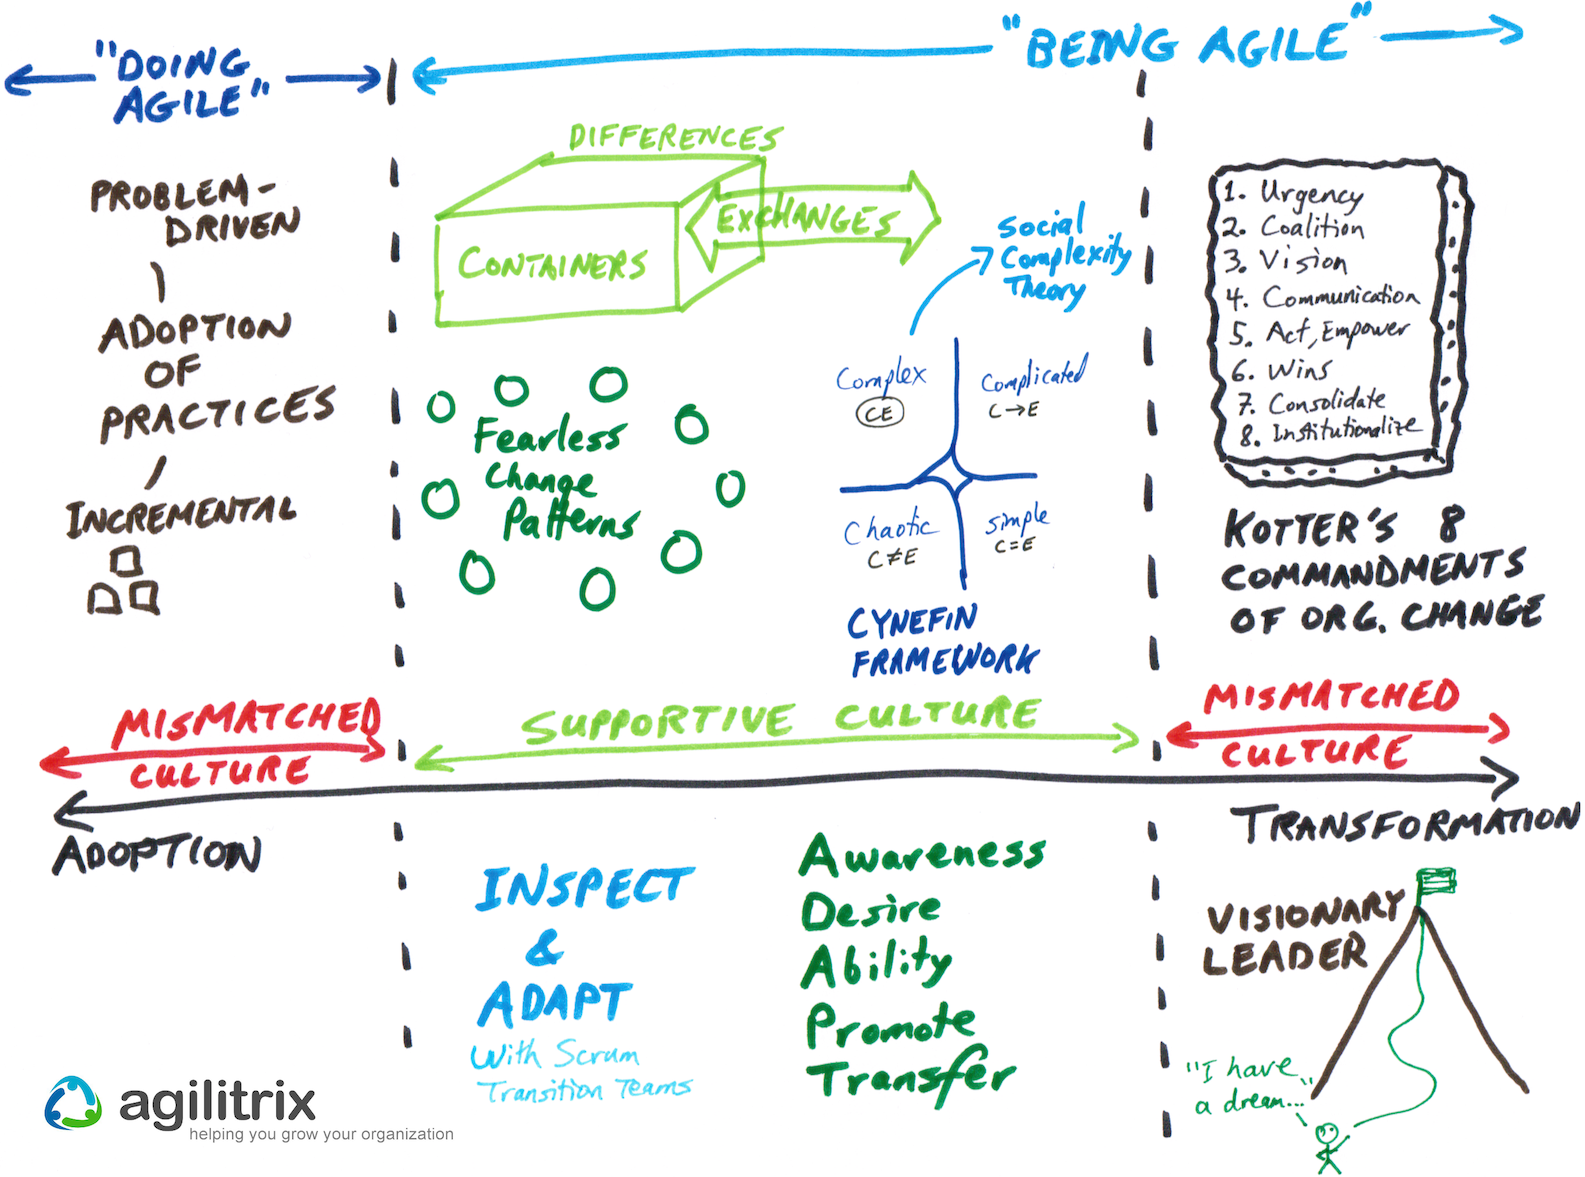 There Are A Range Of Approaches To Get From Doing Agile